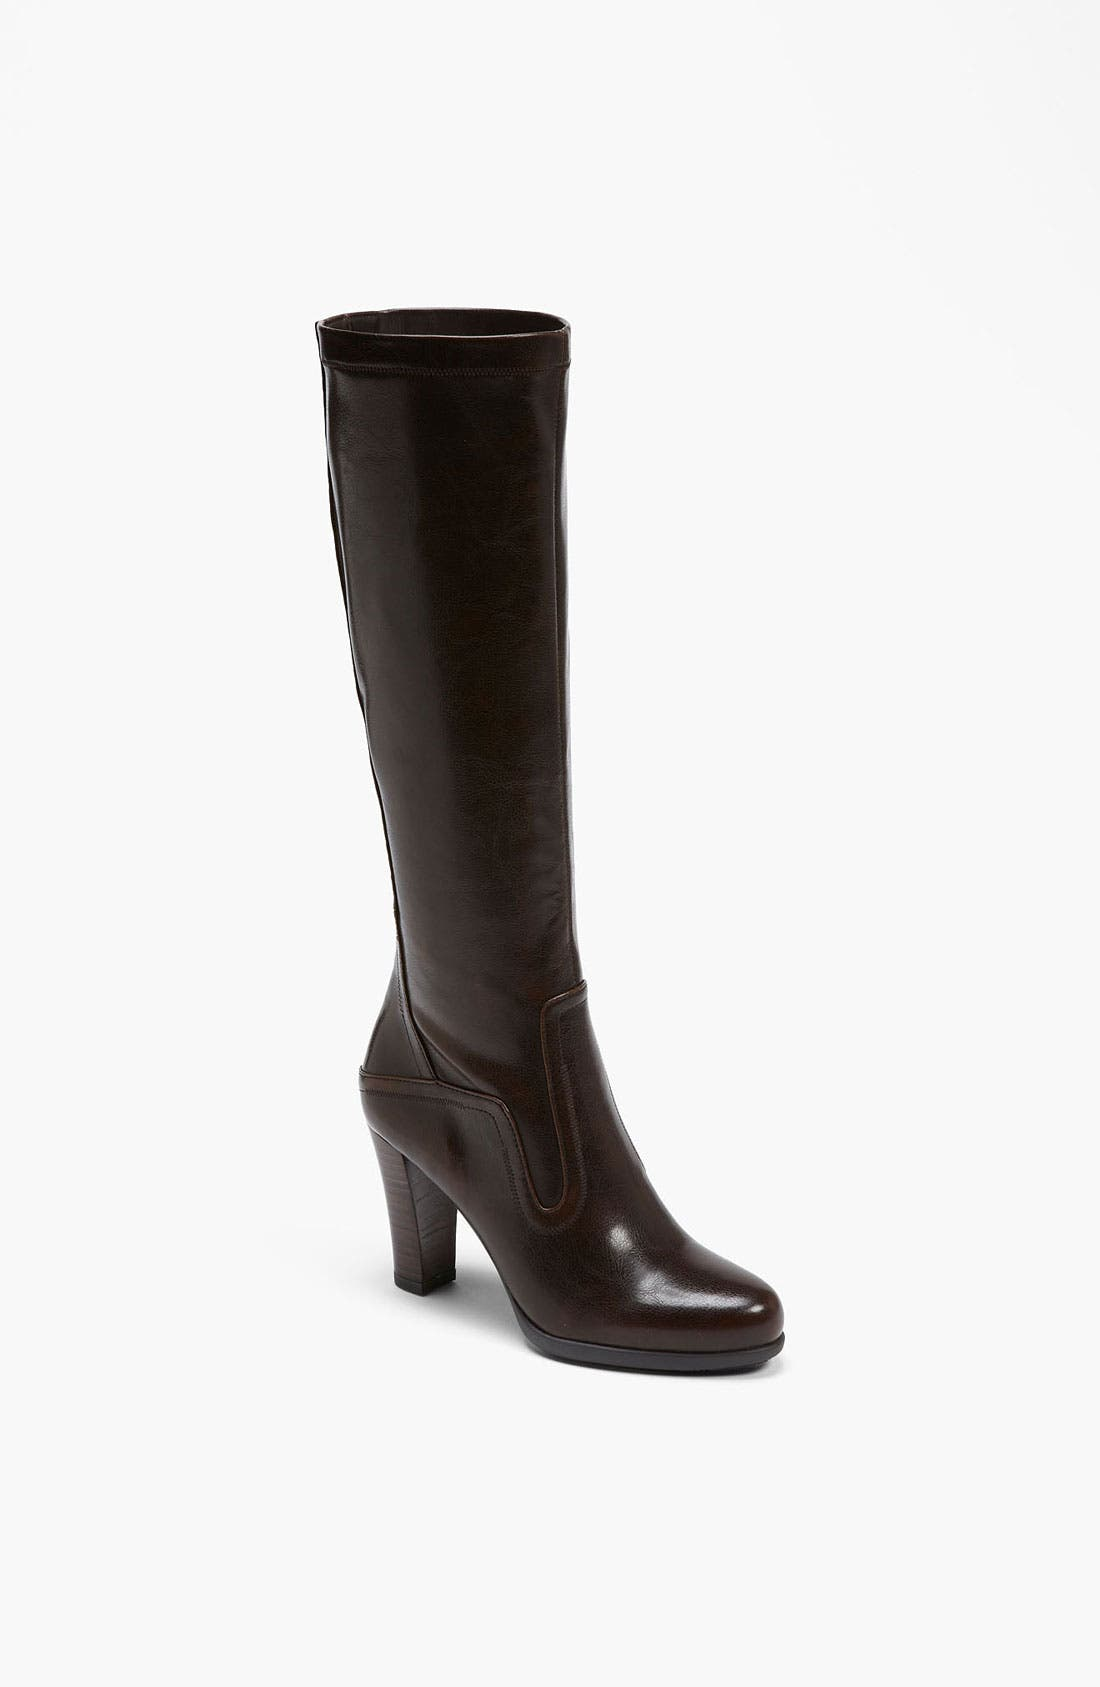 Main Image - Franco Sarto 'Hush' Boot (Special Purchase)